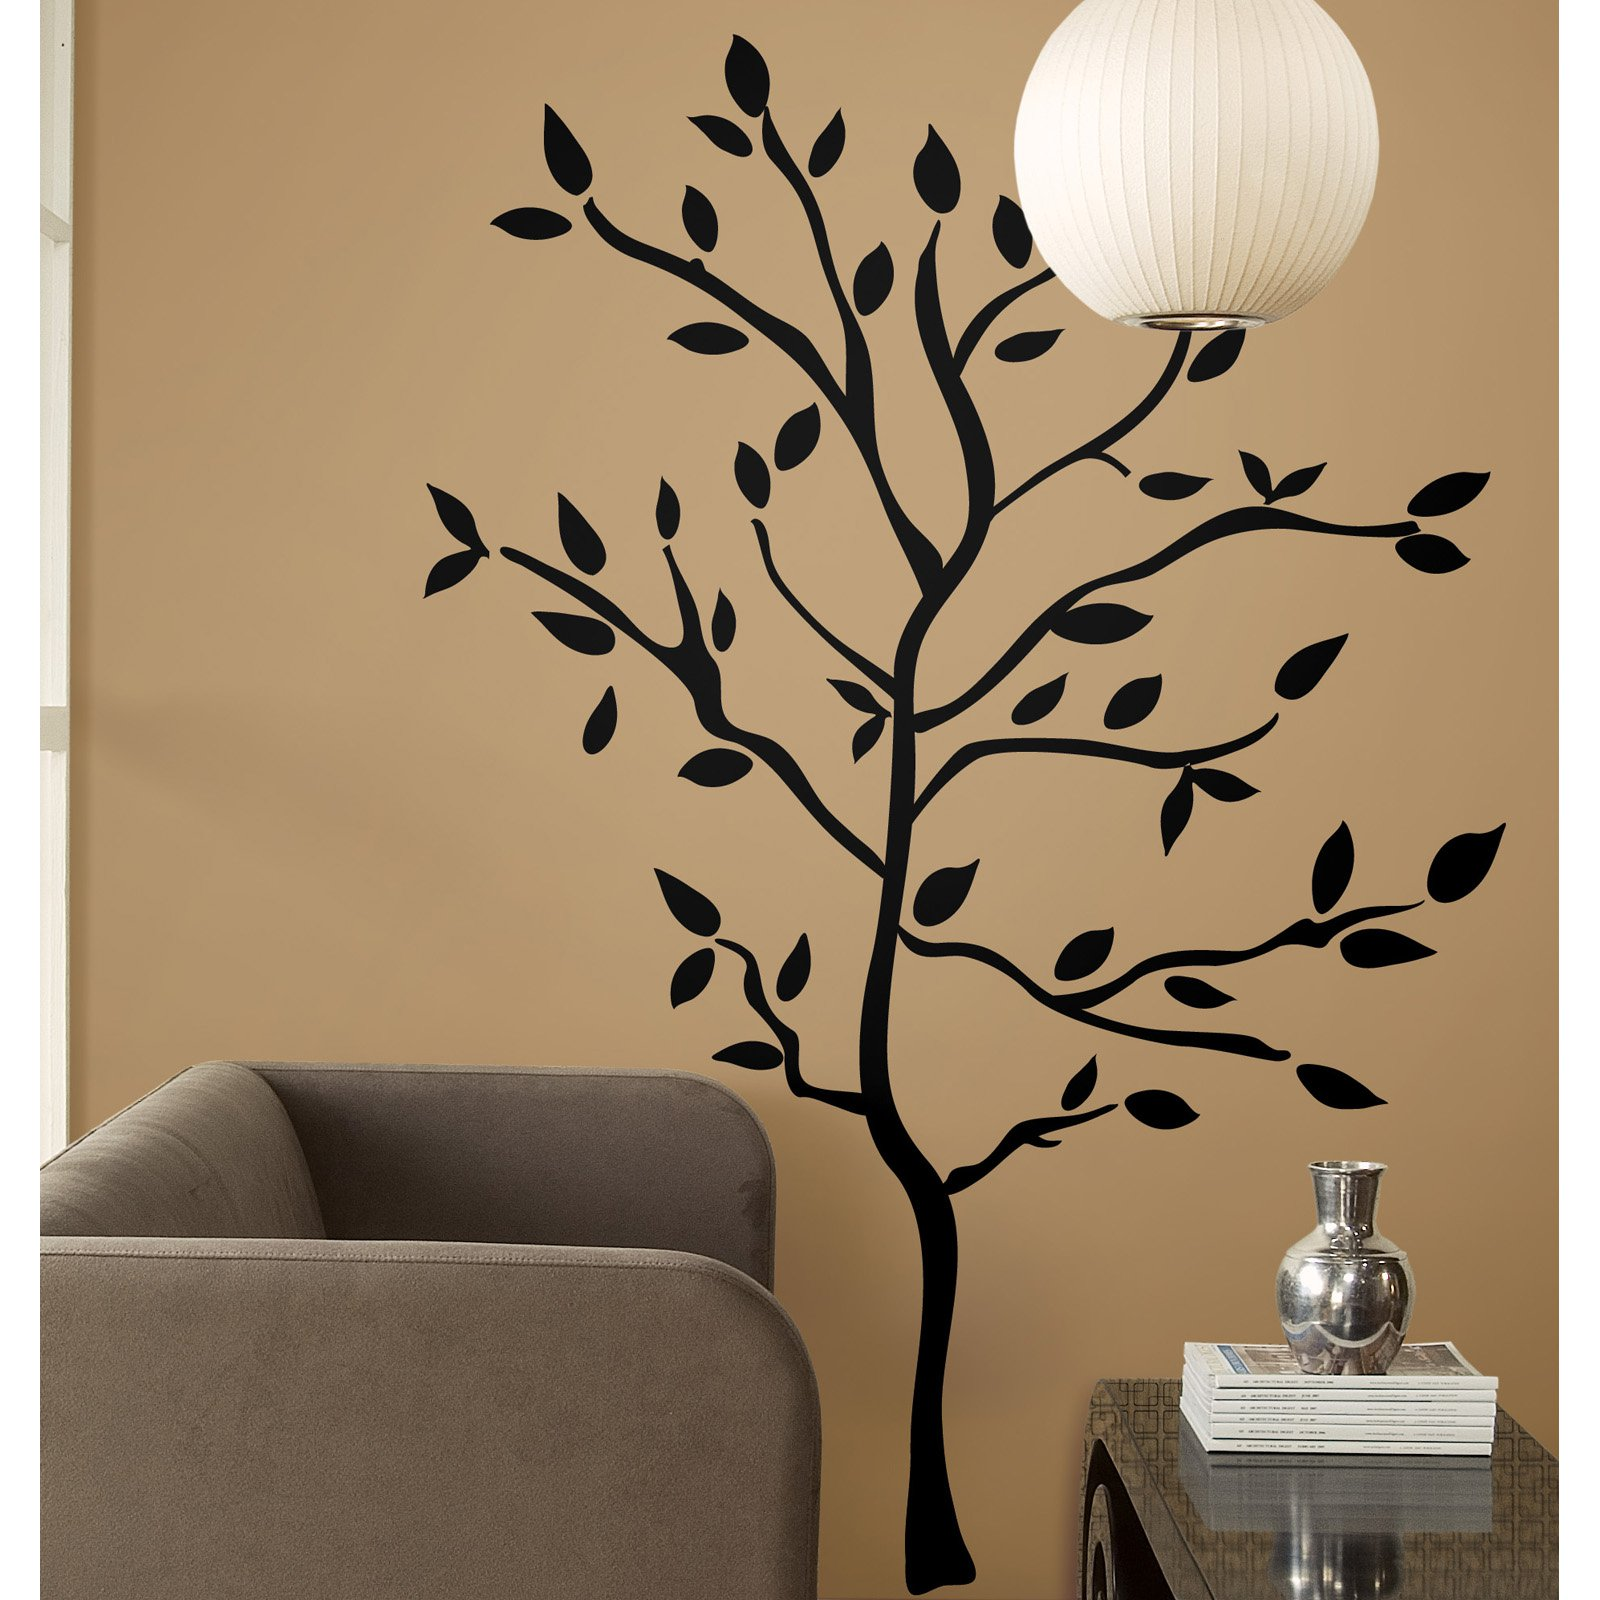 644b90a911a9 Tree Branches Peel and Stick Wall Decals - Walmart.com